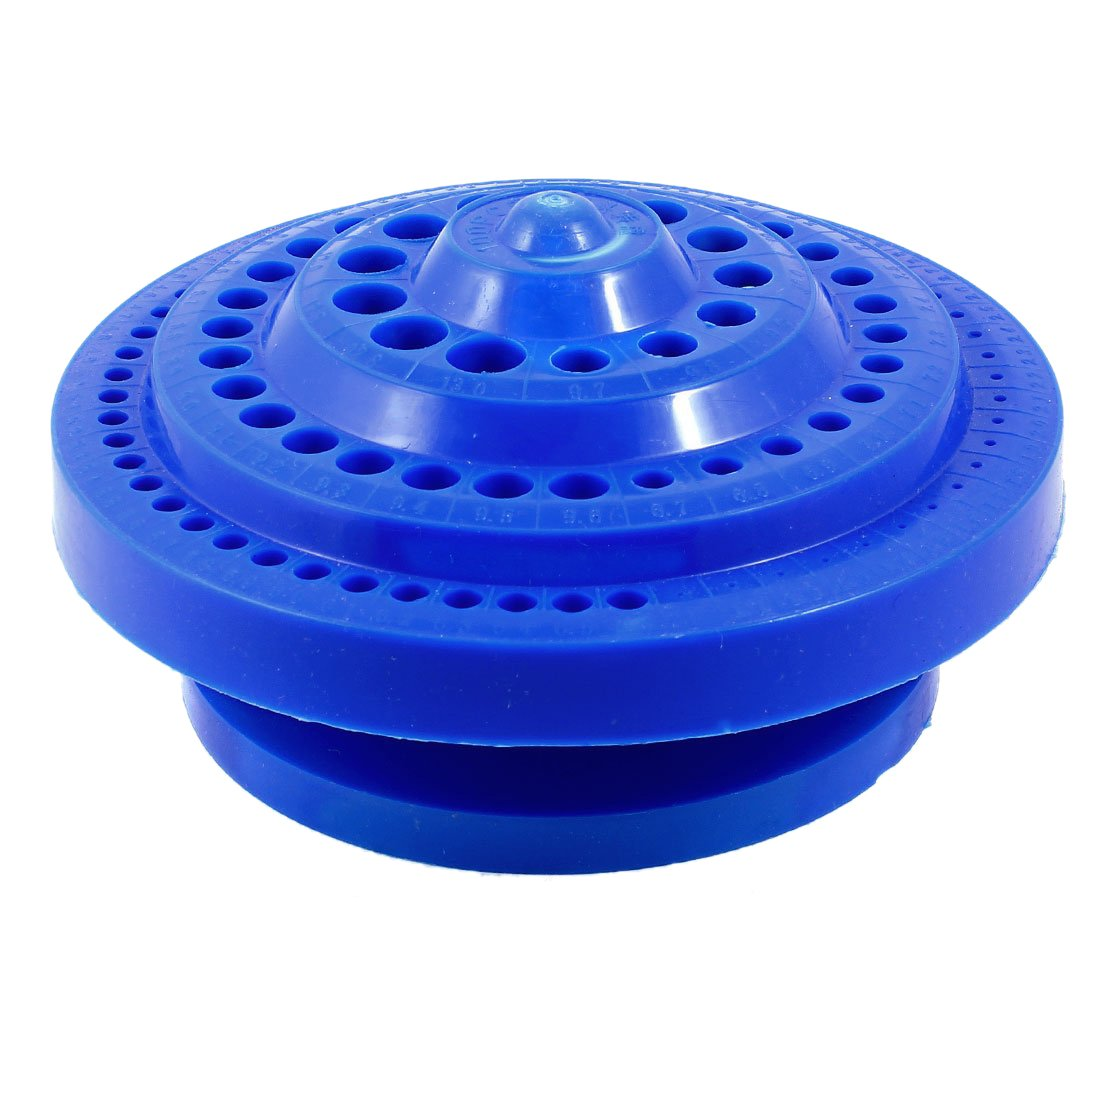 SODIAL(R) Round Shape Plastic Hard Drill Bit Storage Case - Blue